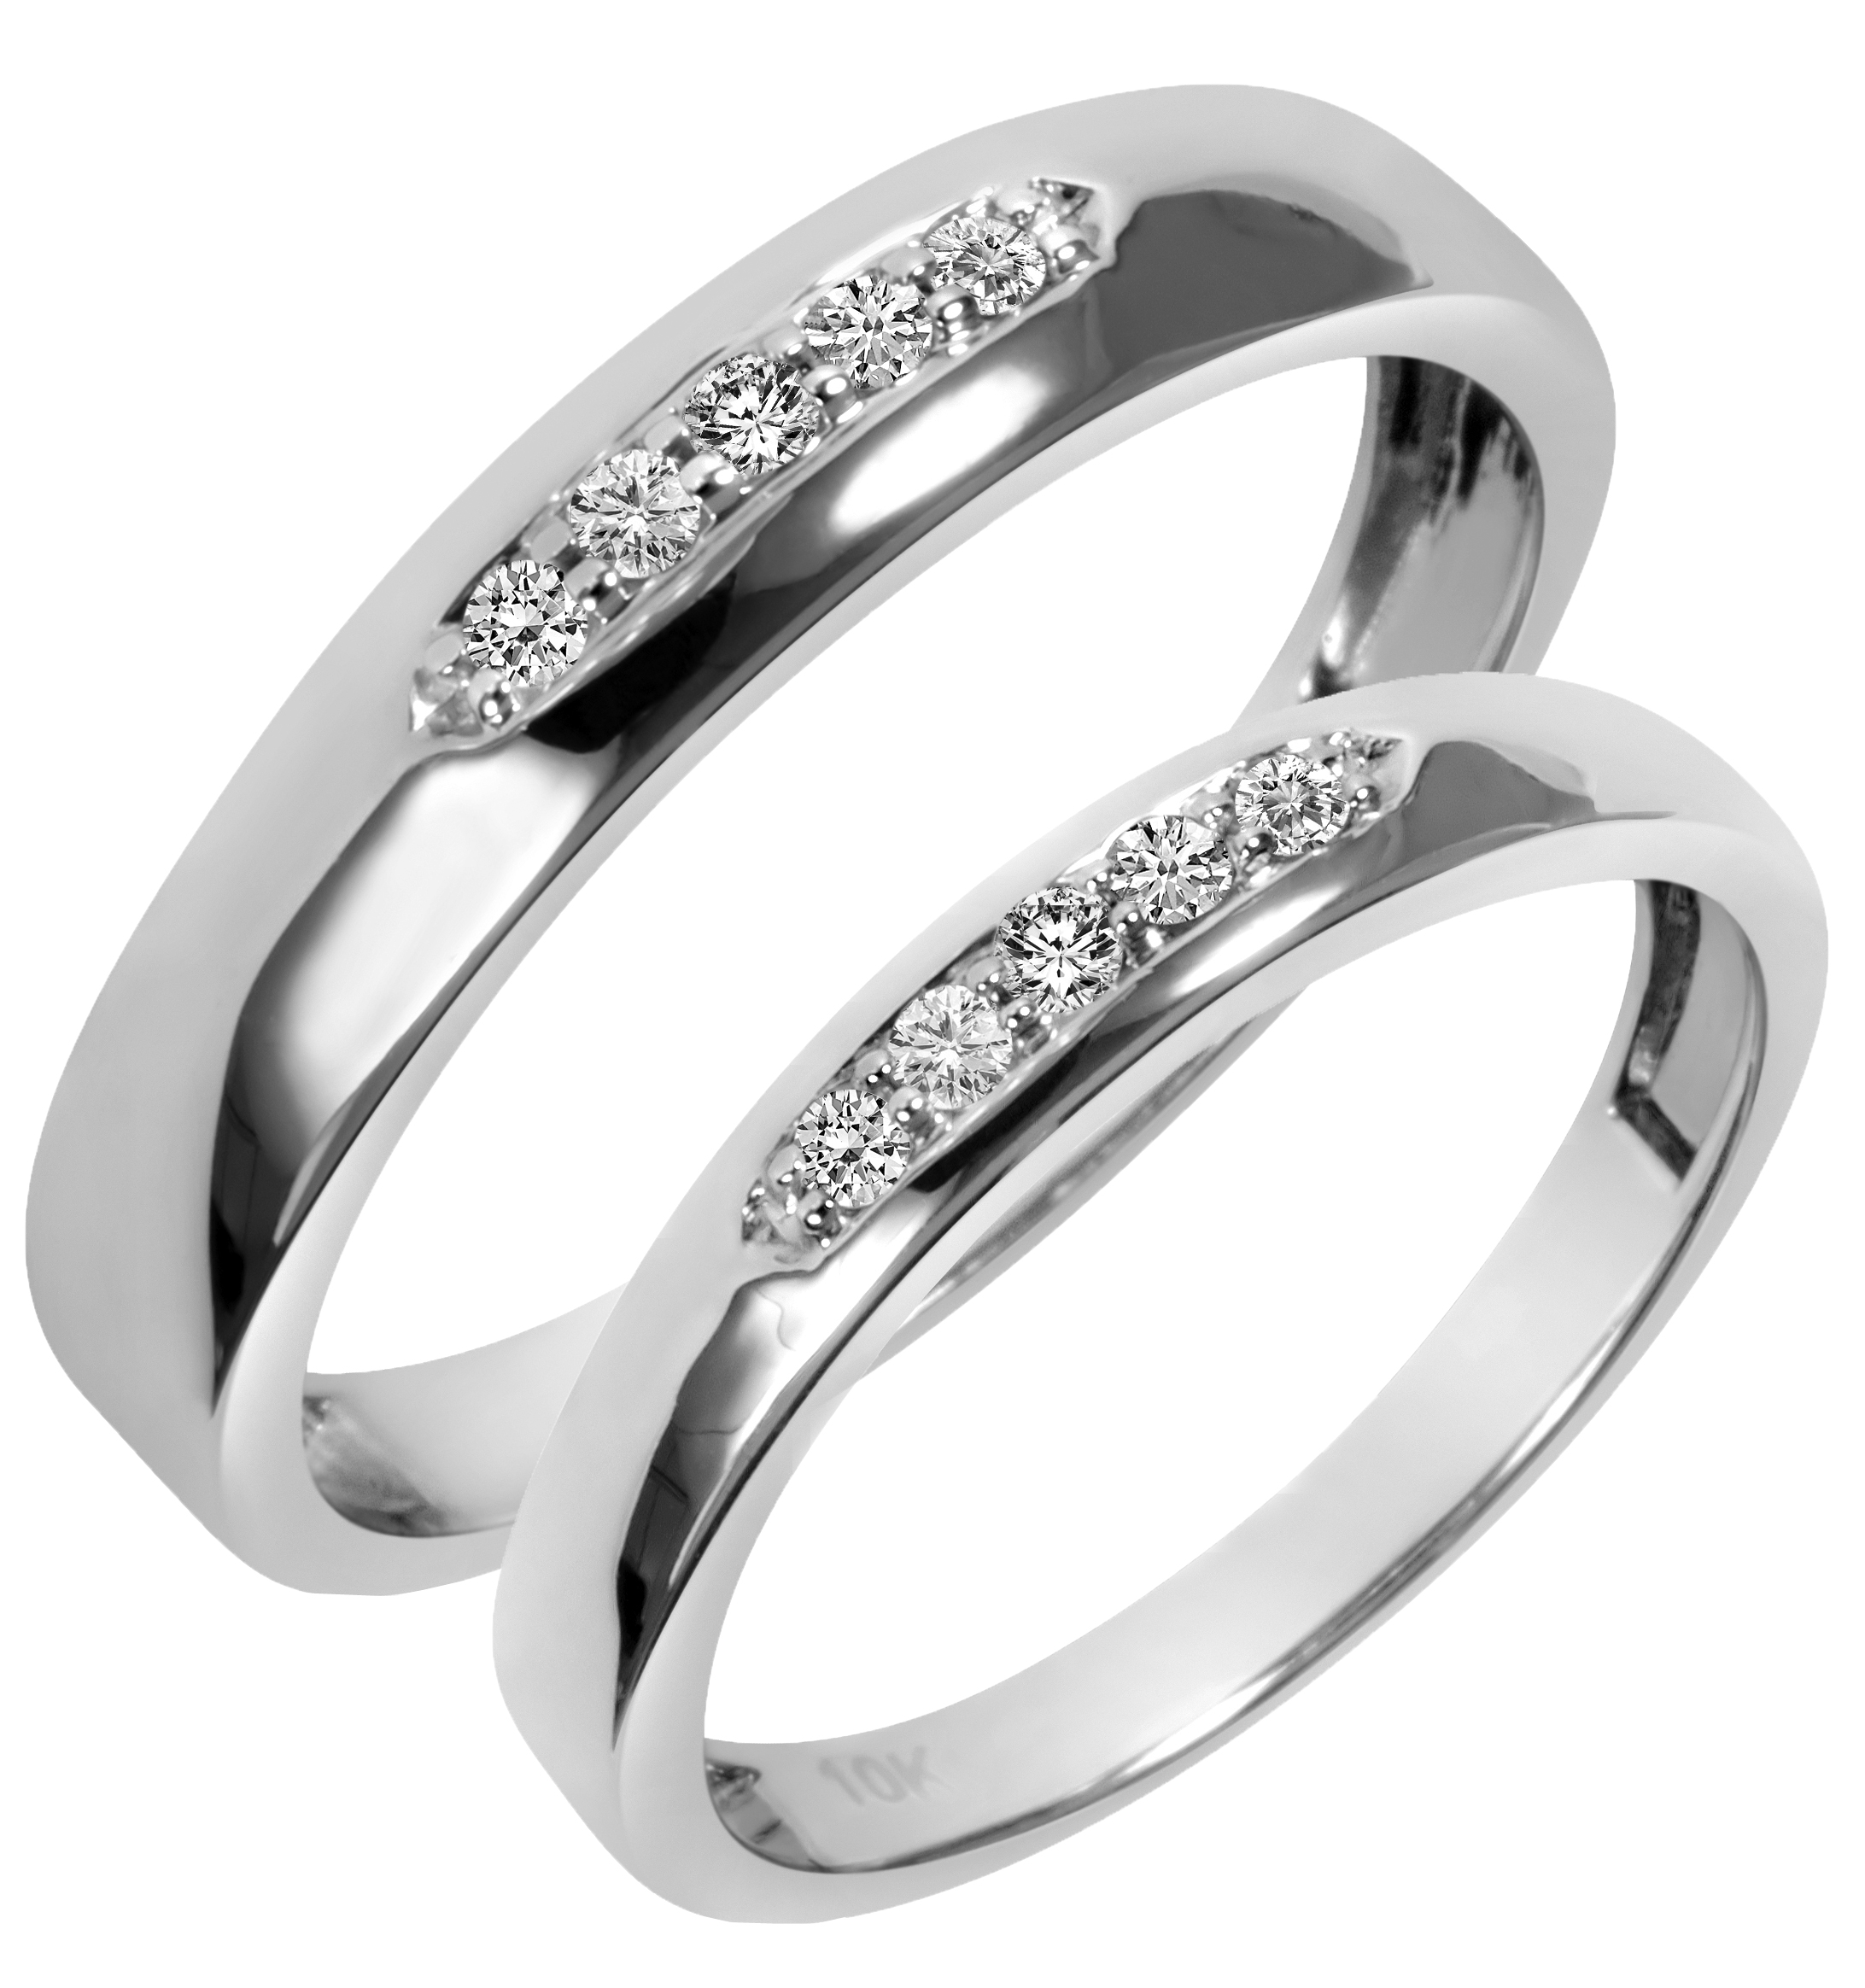 carat t w diamond his and hers wedding band set 10k white gold